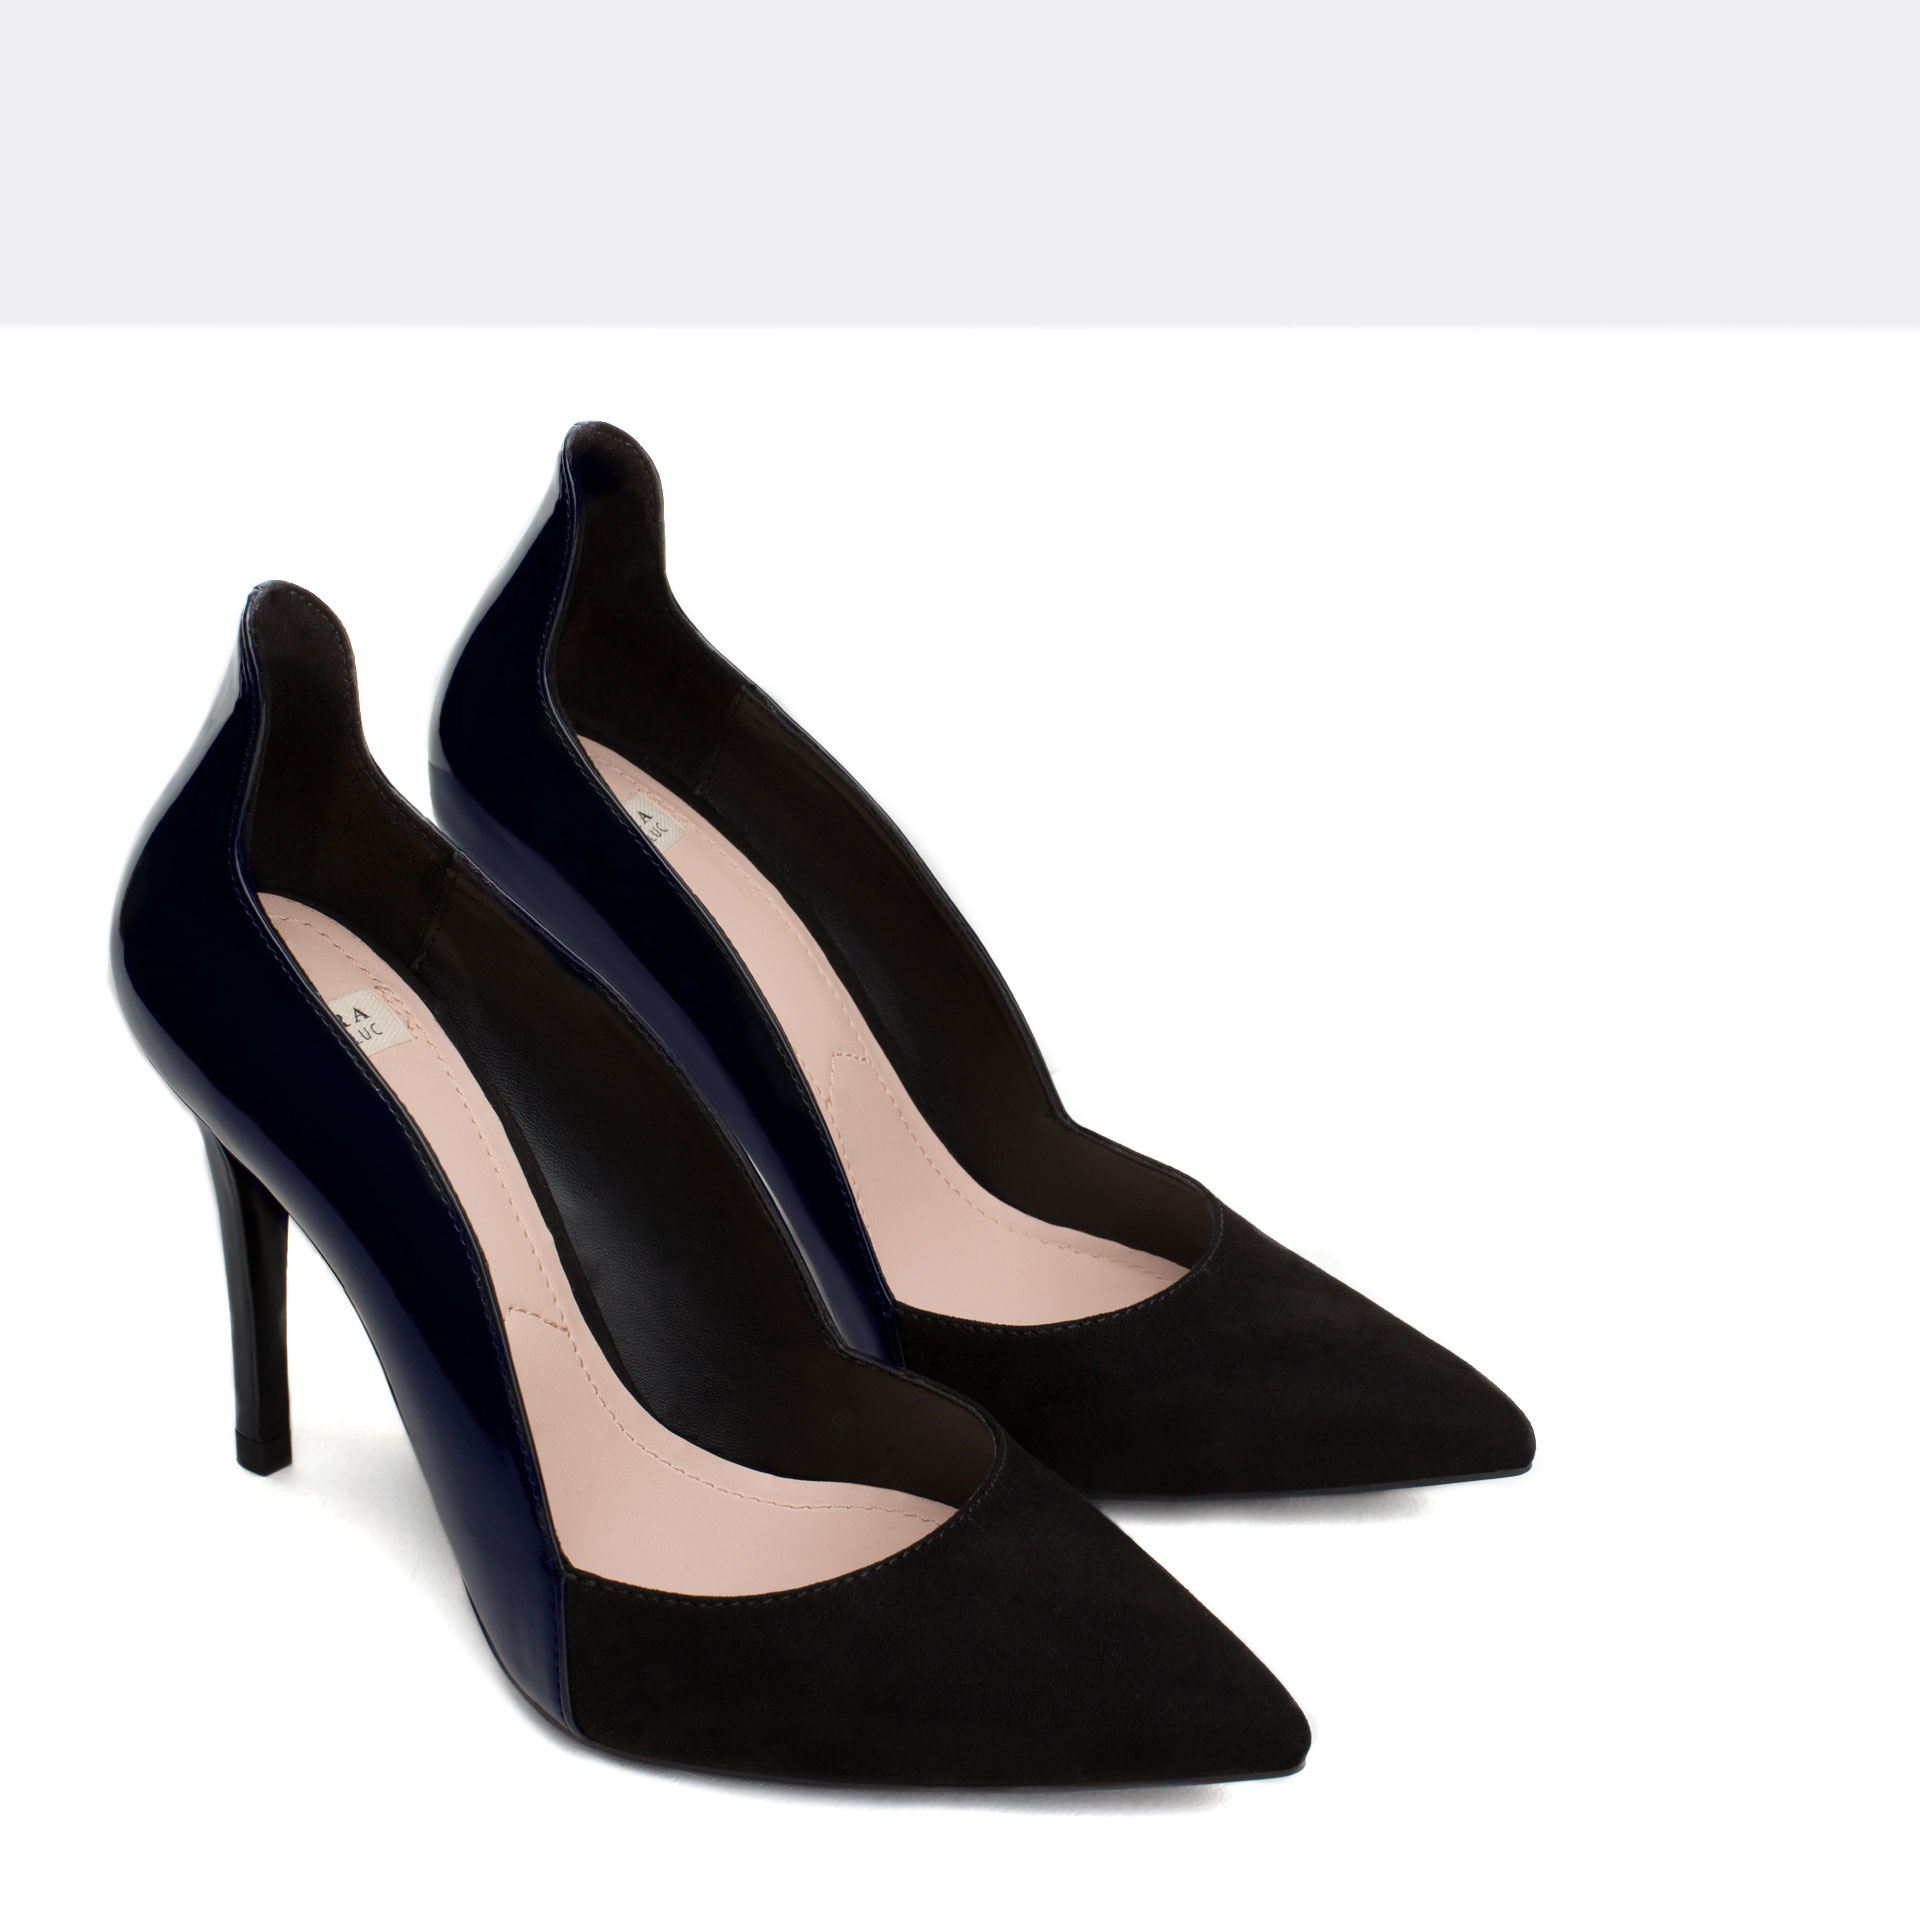 Zara Combined High Heel Strappy Shoes in Black | Lyst